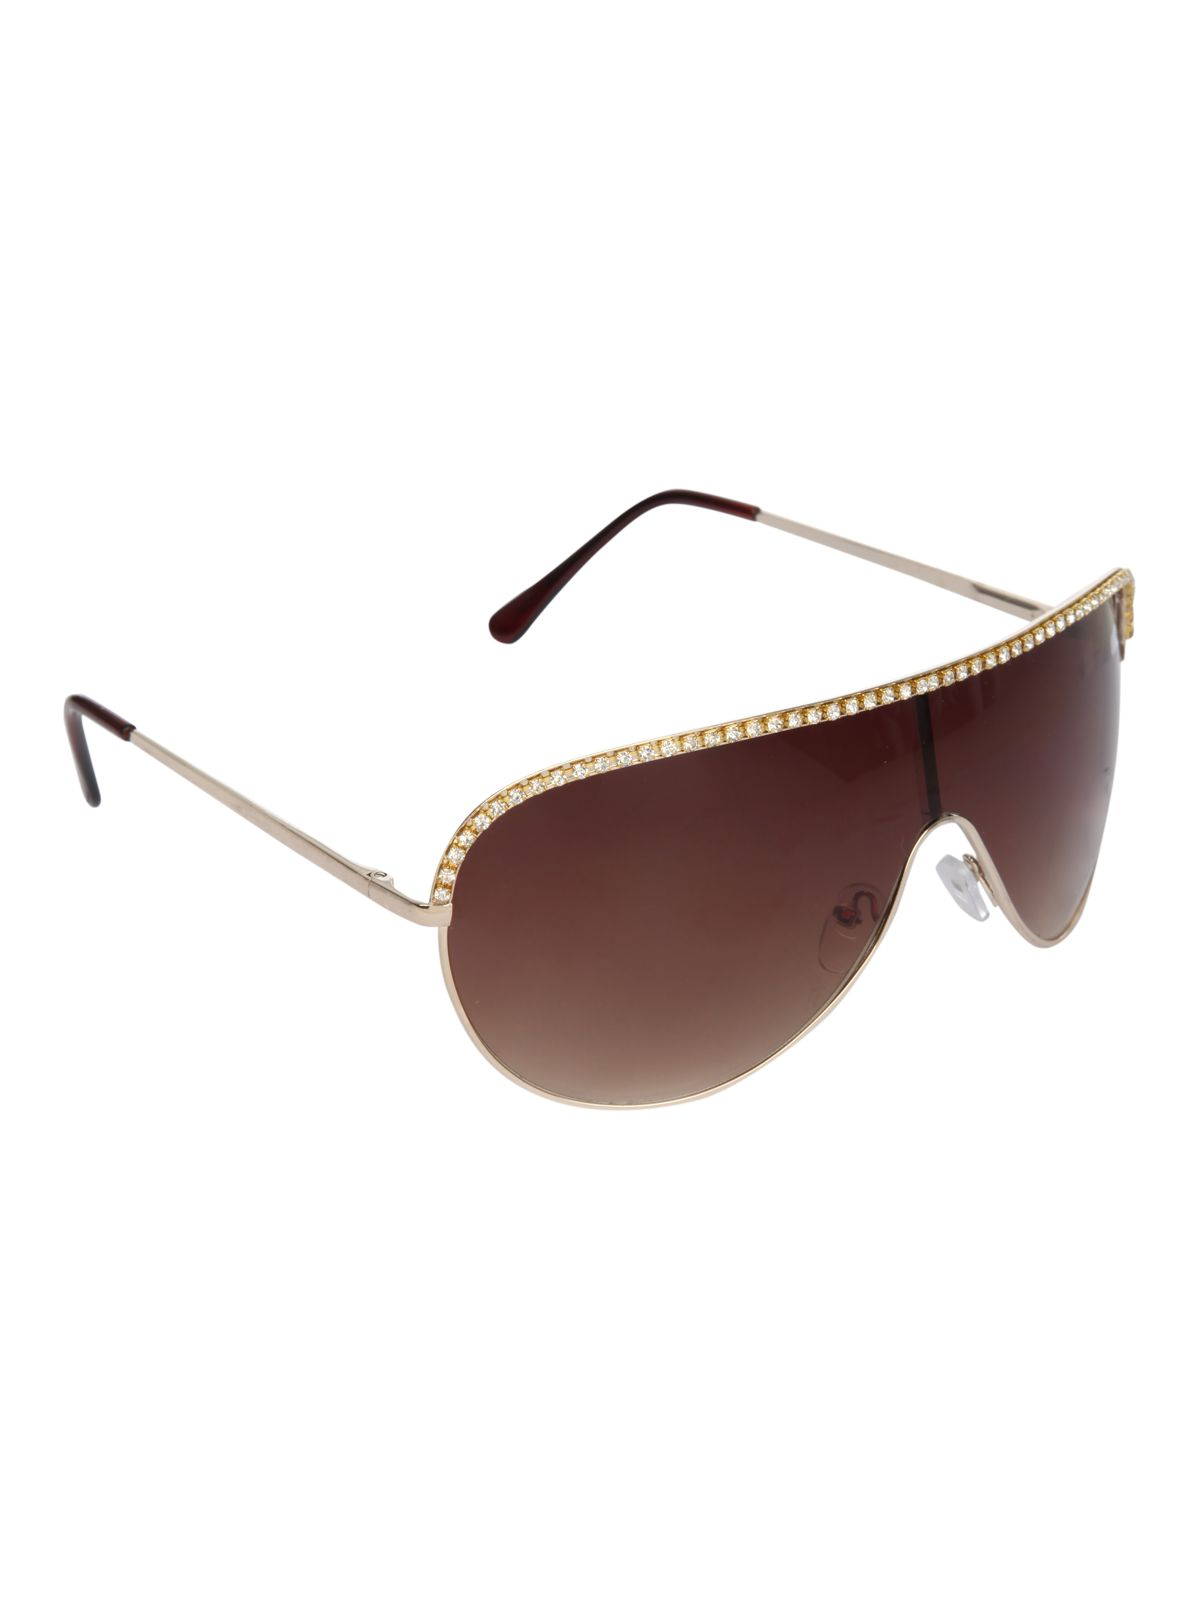 Bling visor sunglasses